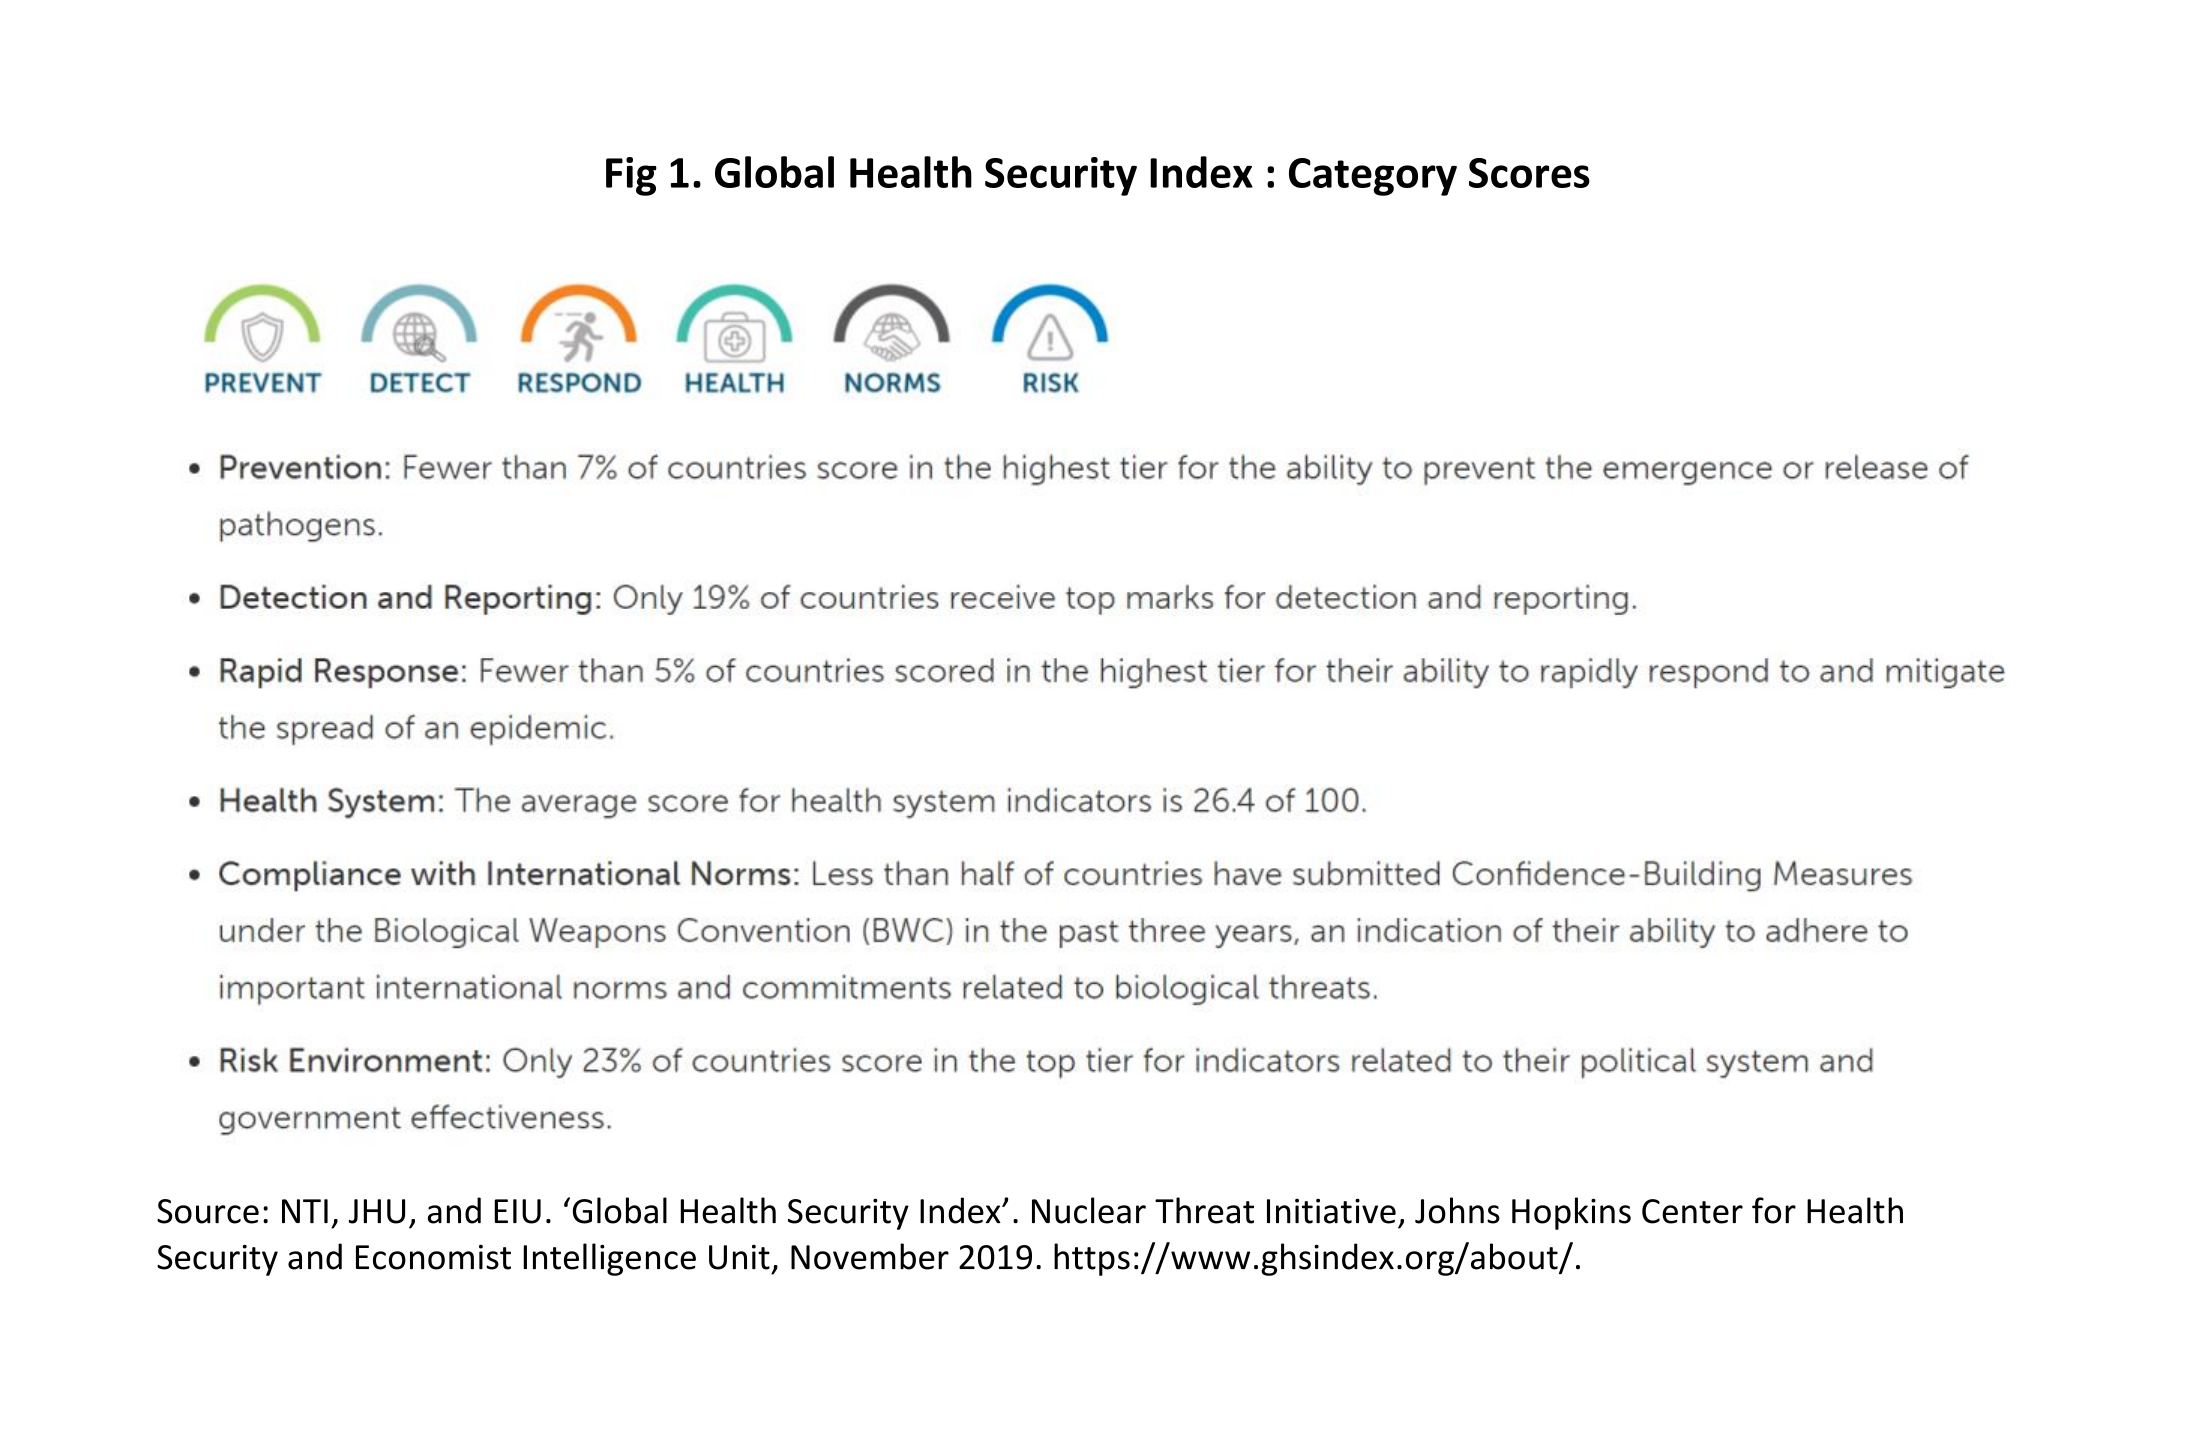 Global Health Security Index: Category Scores